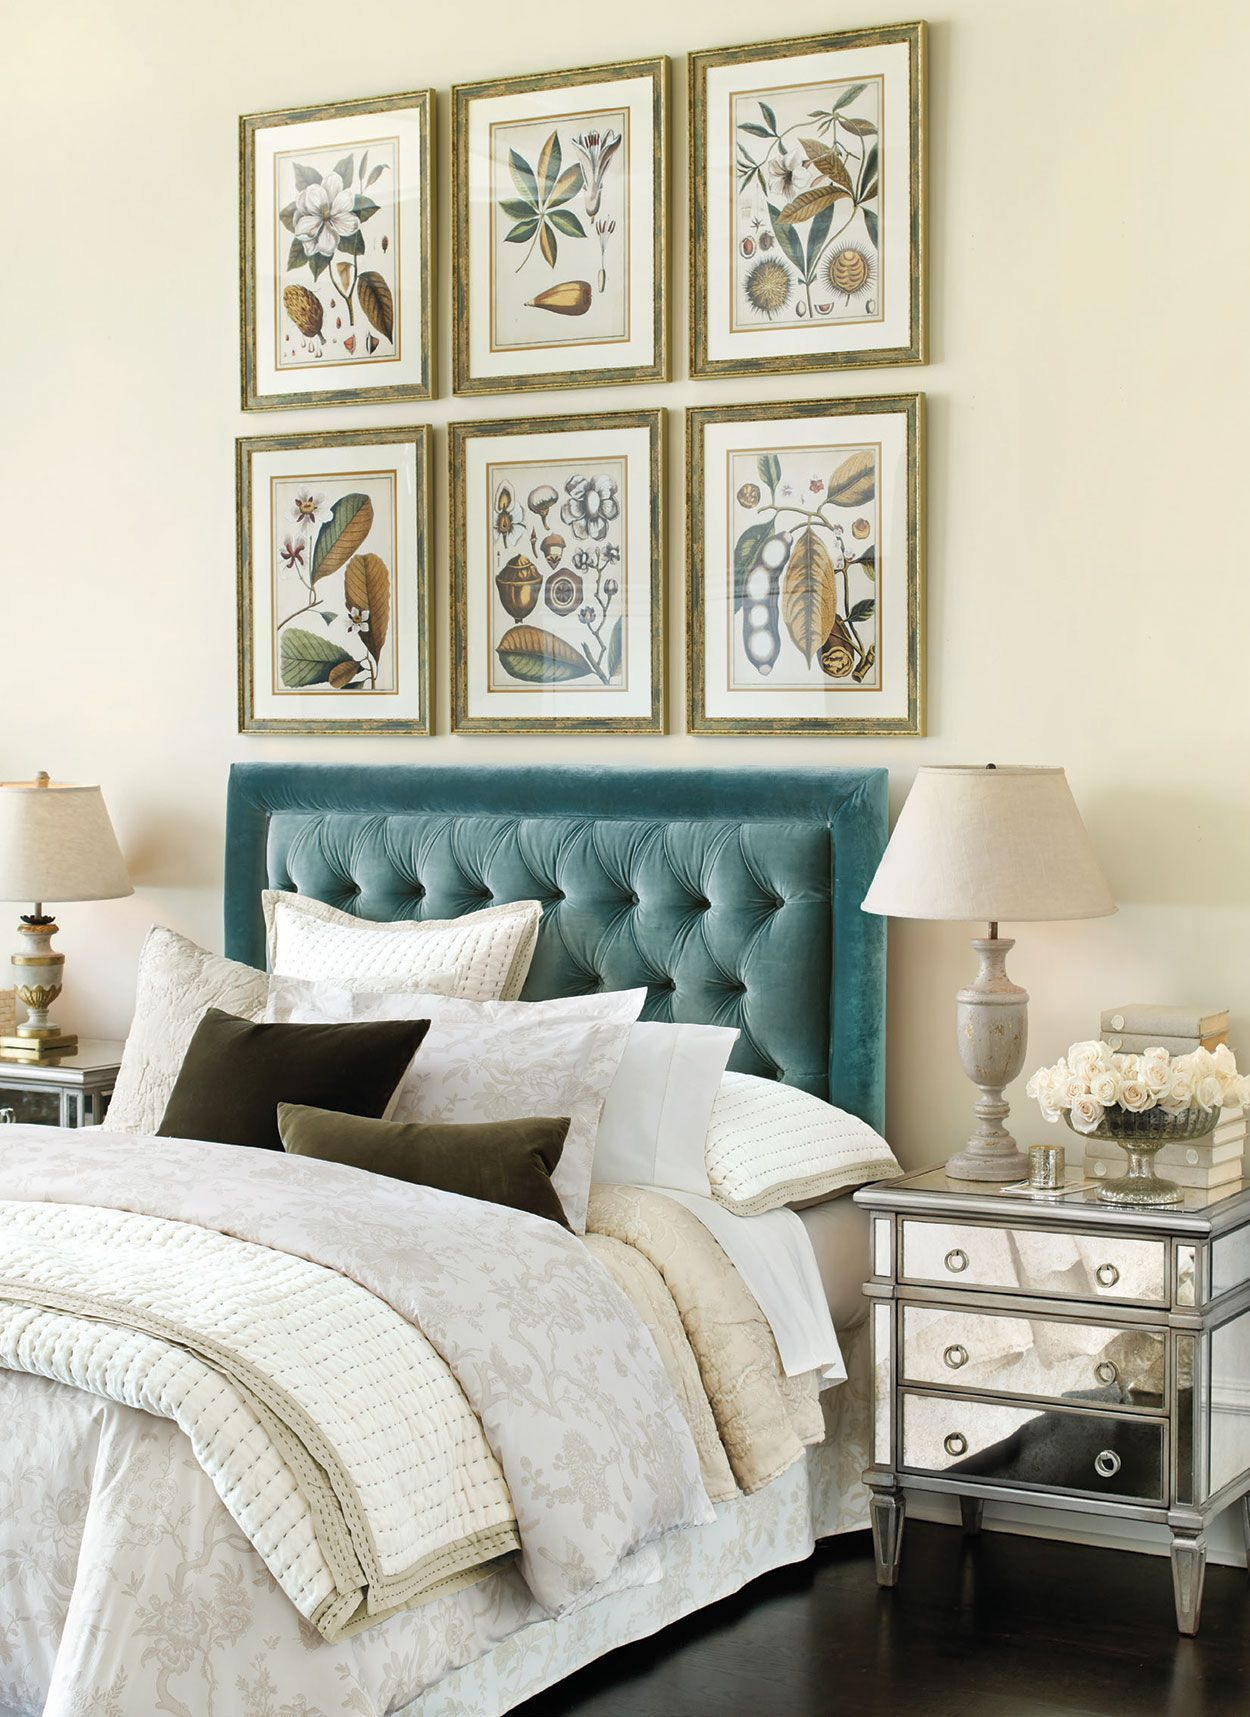 Bedrooms Bedroom design inspiration, Tufted headboards